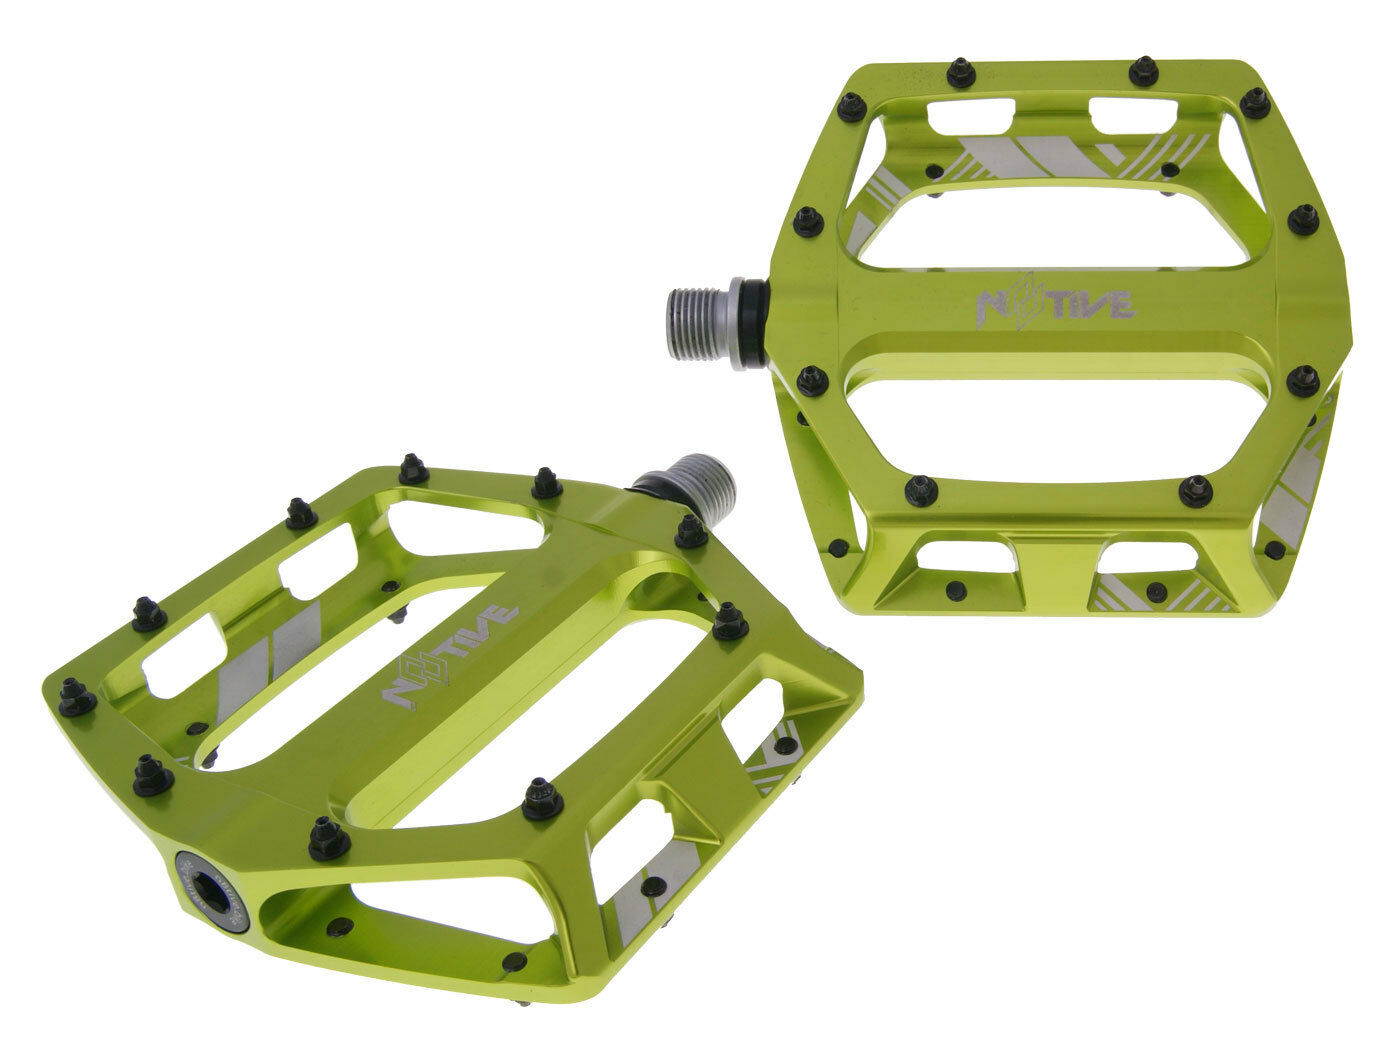 N 8 tive Flat pedal DH 105x110mm MTB Mountain Dirt bike downhill